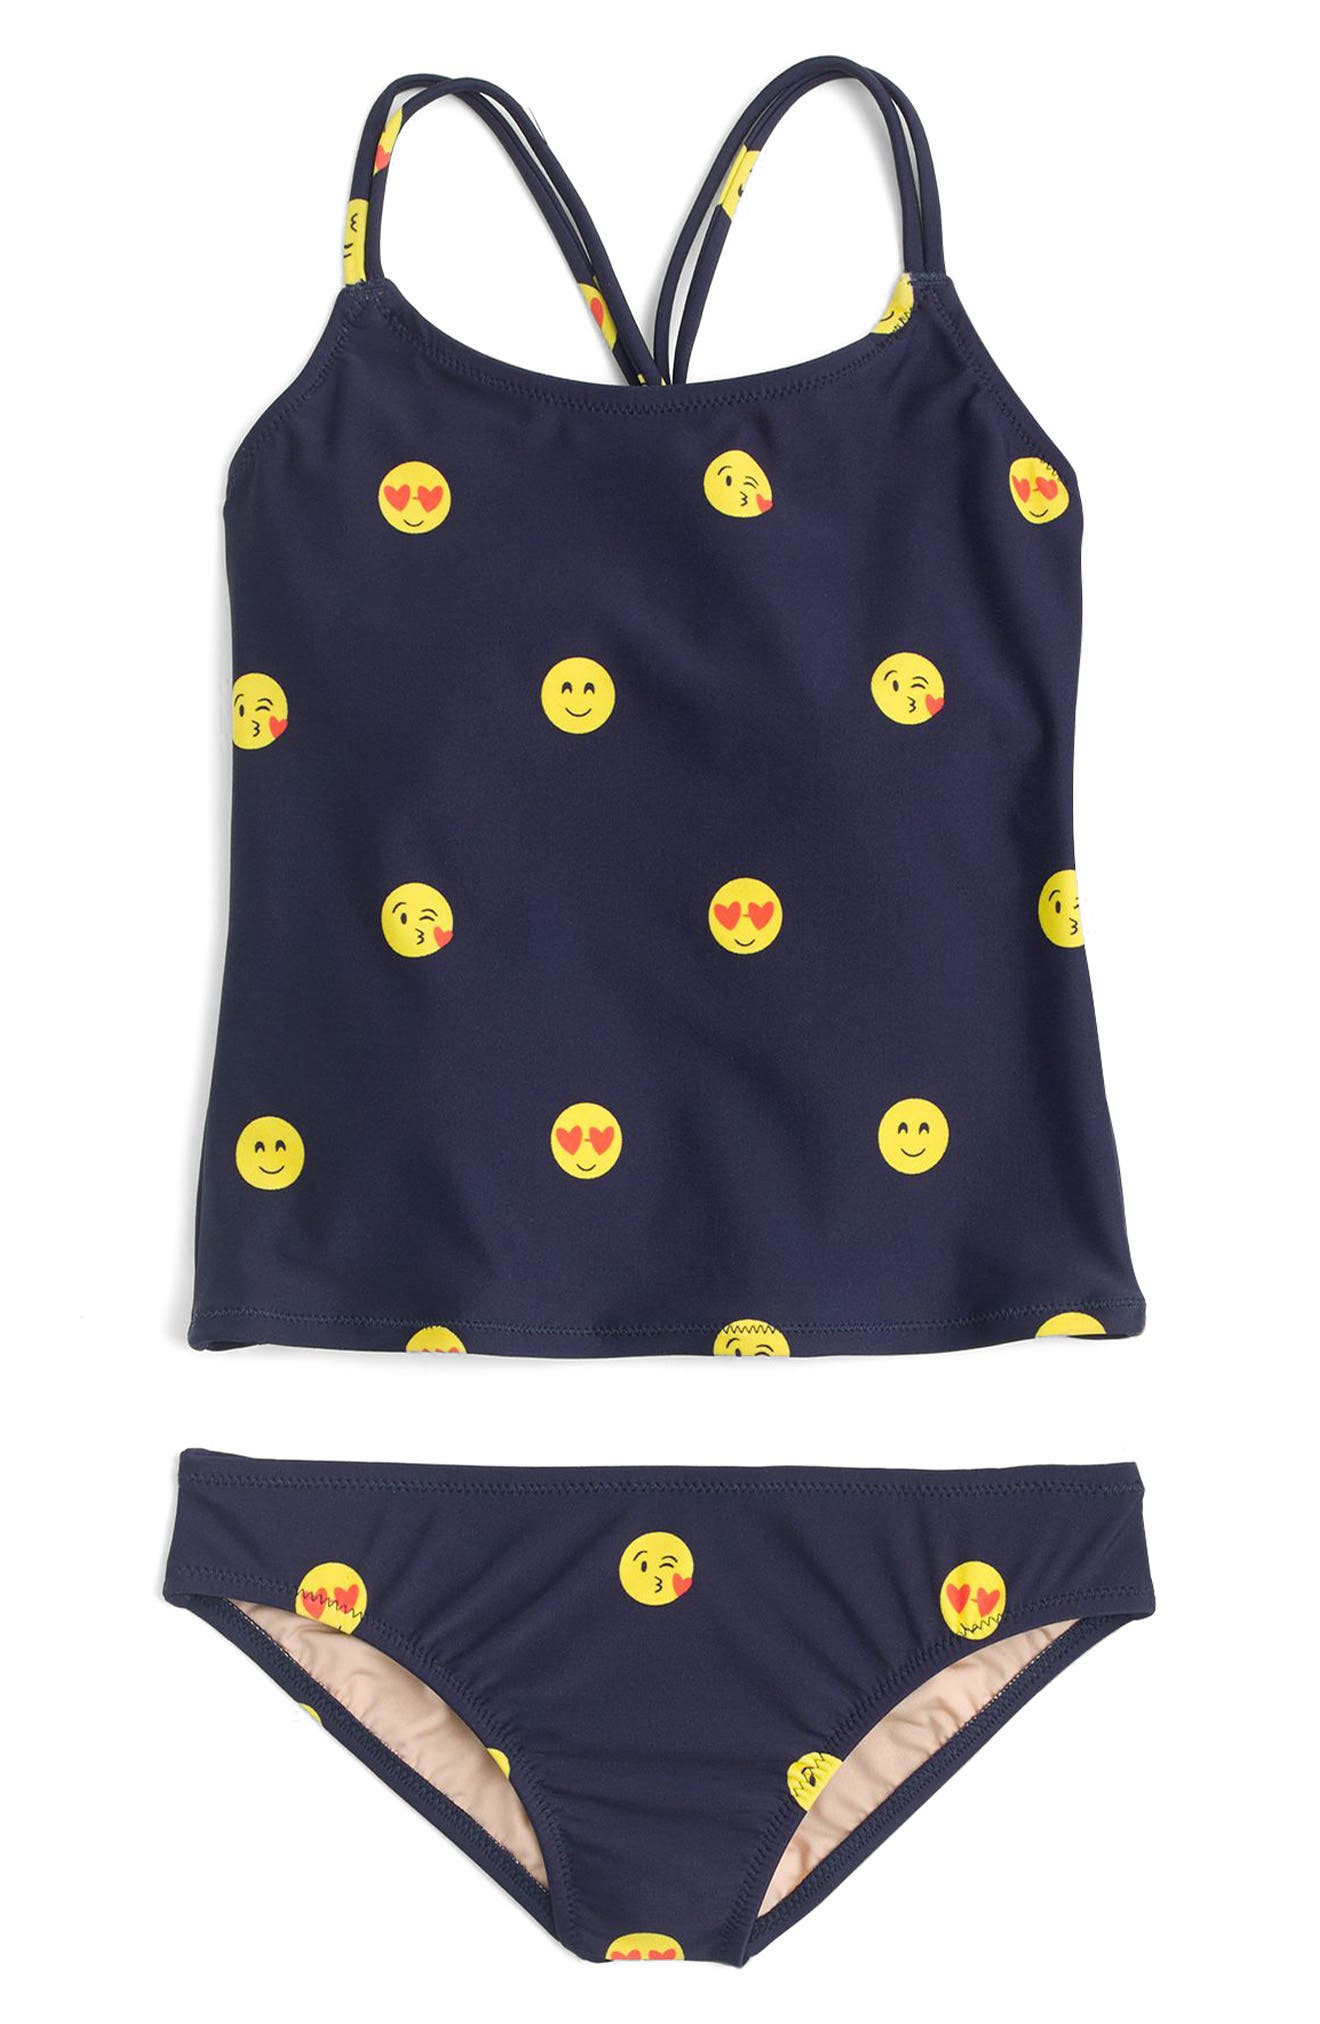 Emoji Two-Piece Swimsuit,                             Main thumbnail 1, color,                             400